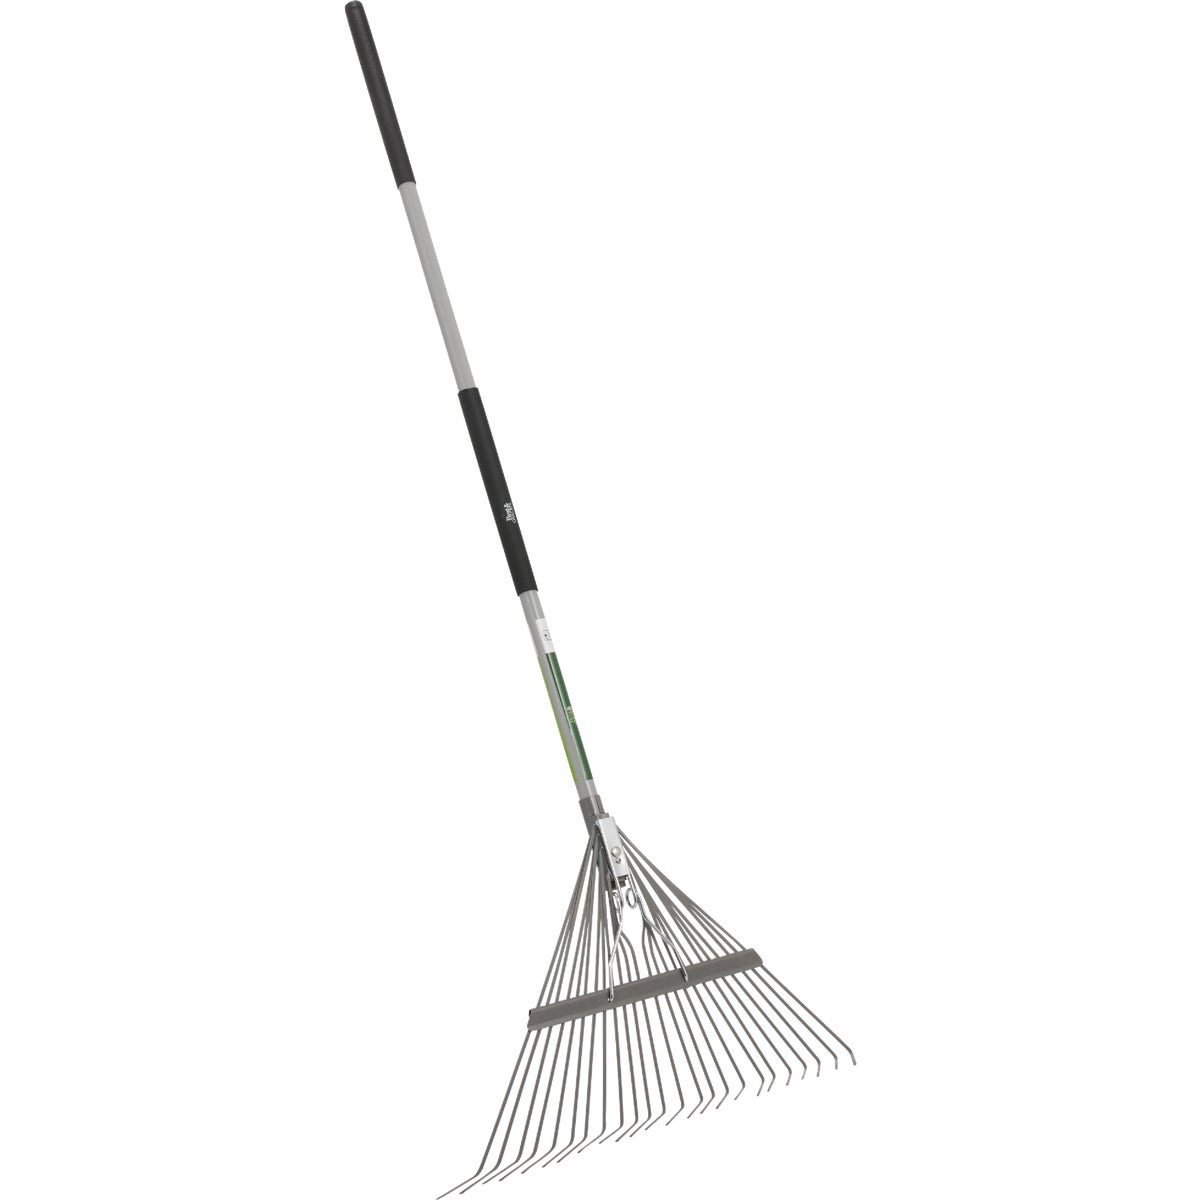 FIBERGLASS HANDLE RAKE - LF-0701 by Do it Best